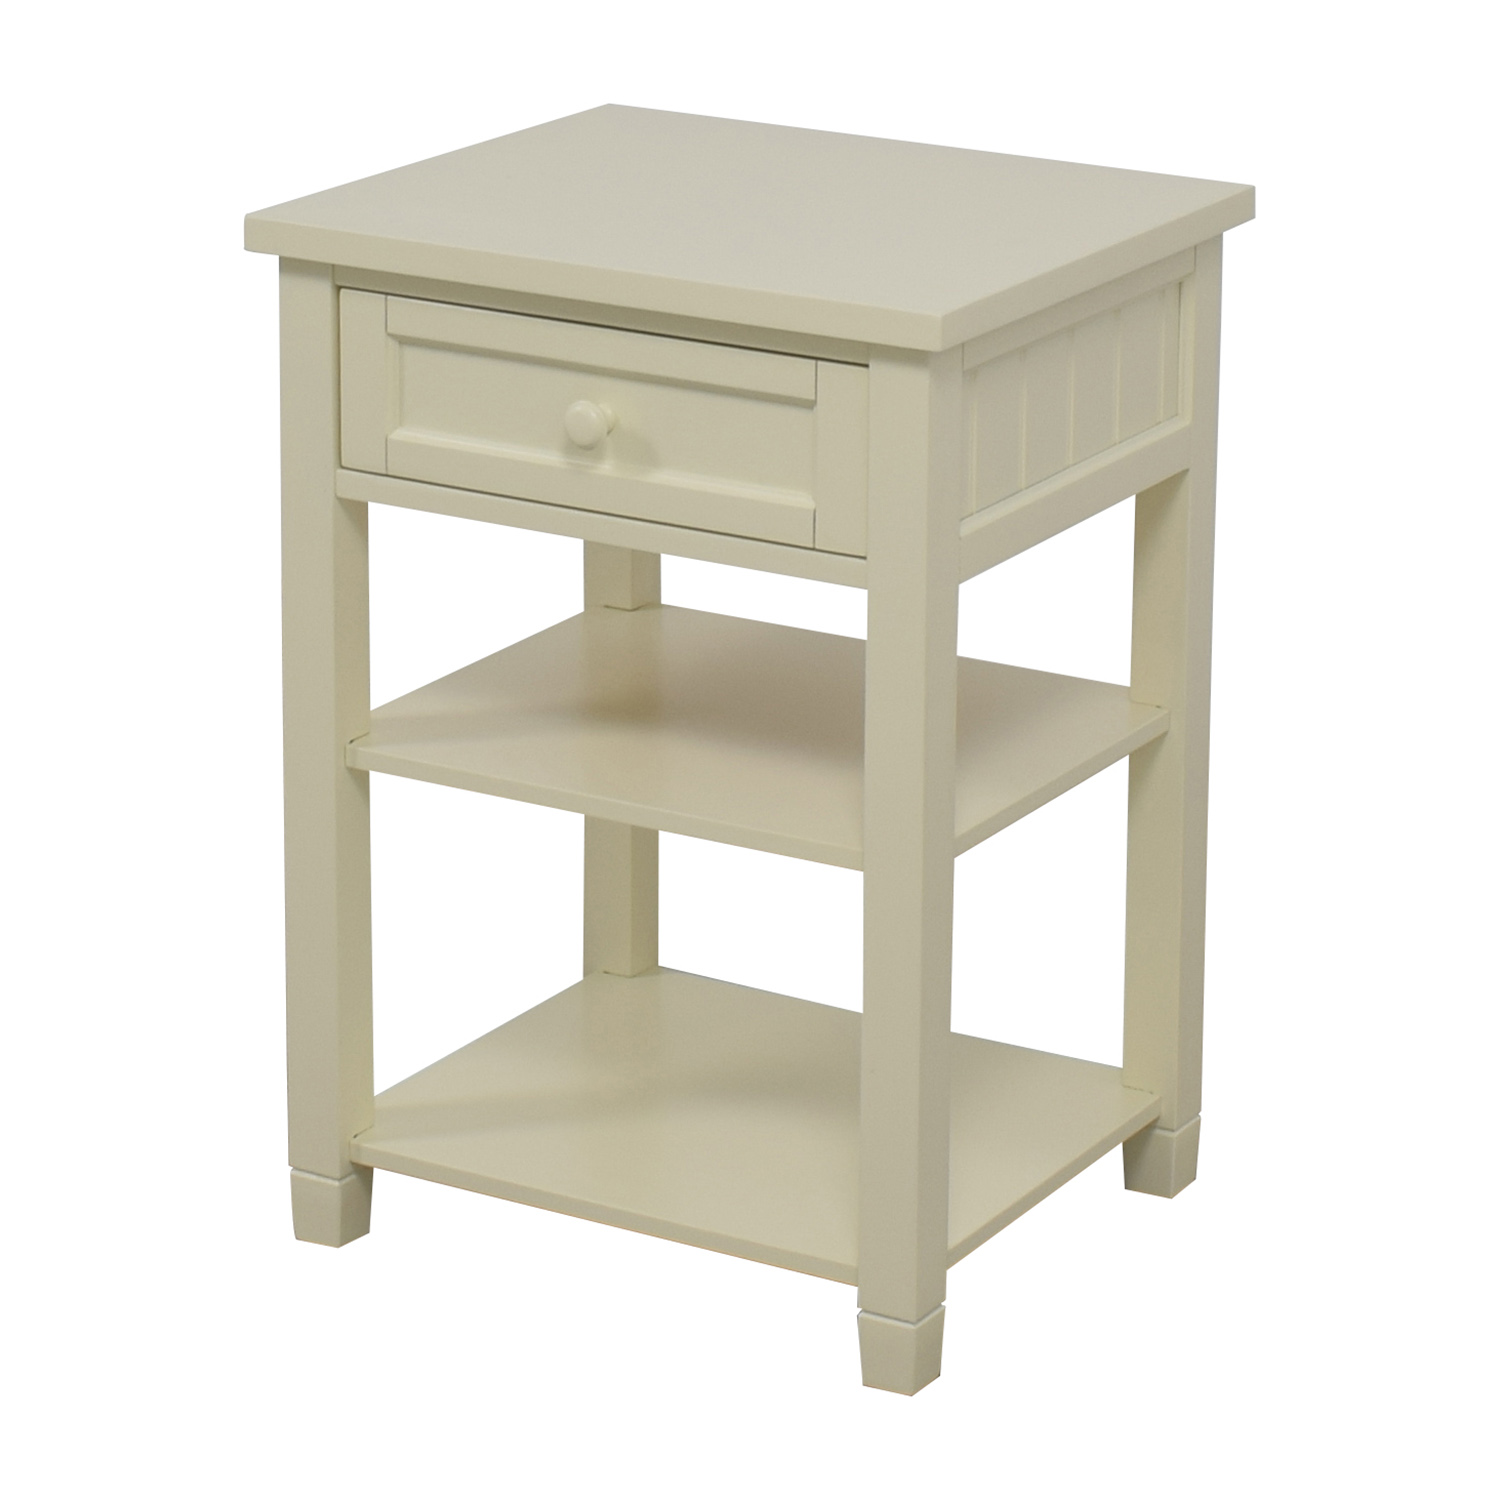 Second Hand Bedside Tables 88 Off Pottery Barn Pottery Barn Beadboard Bedside